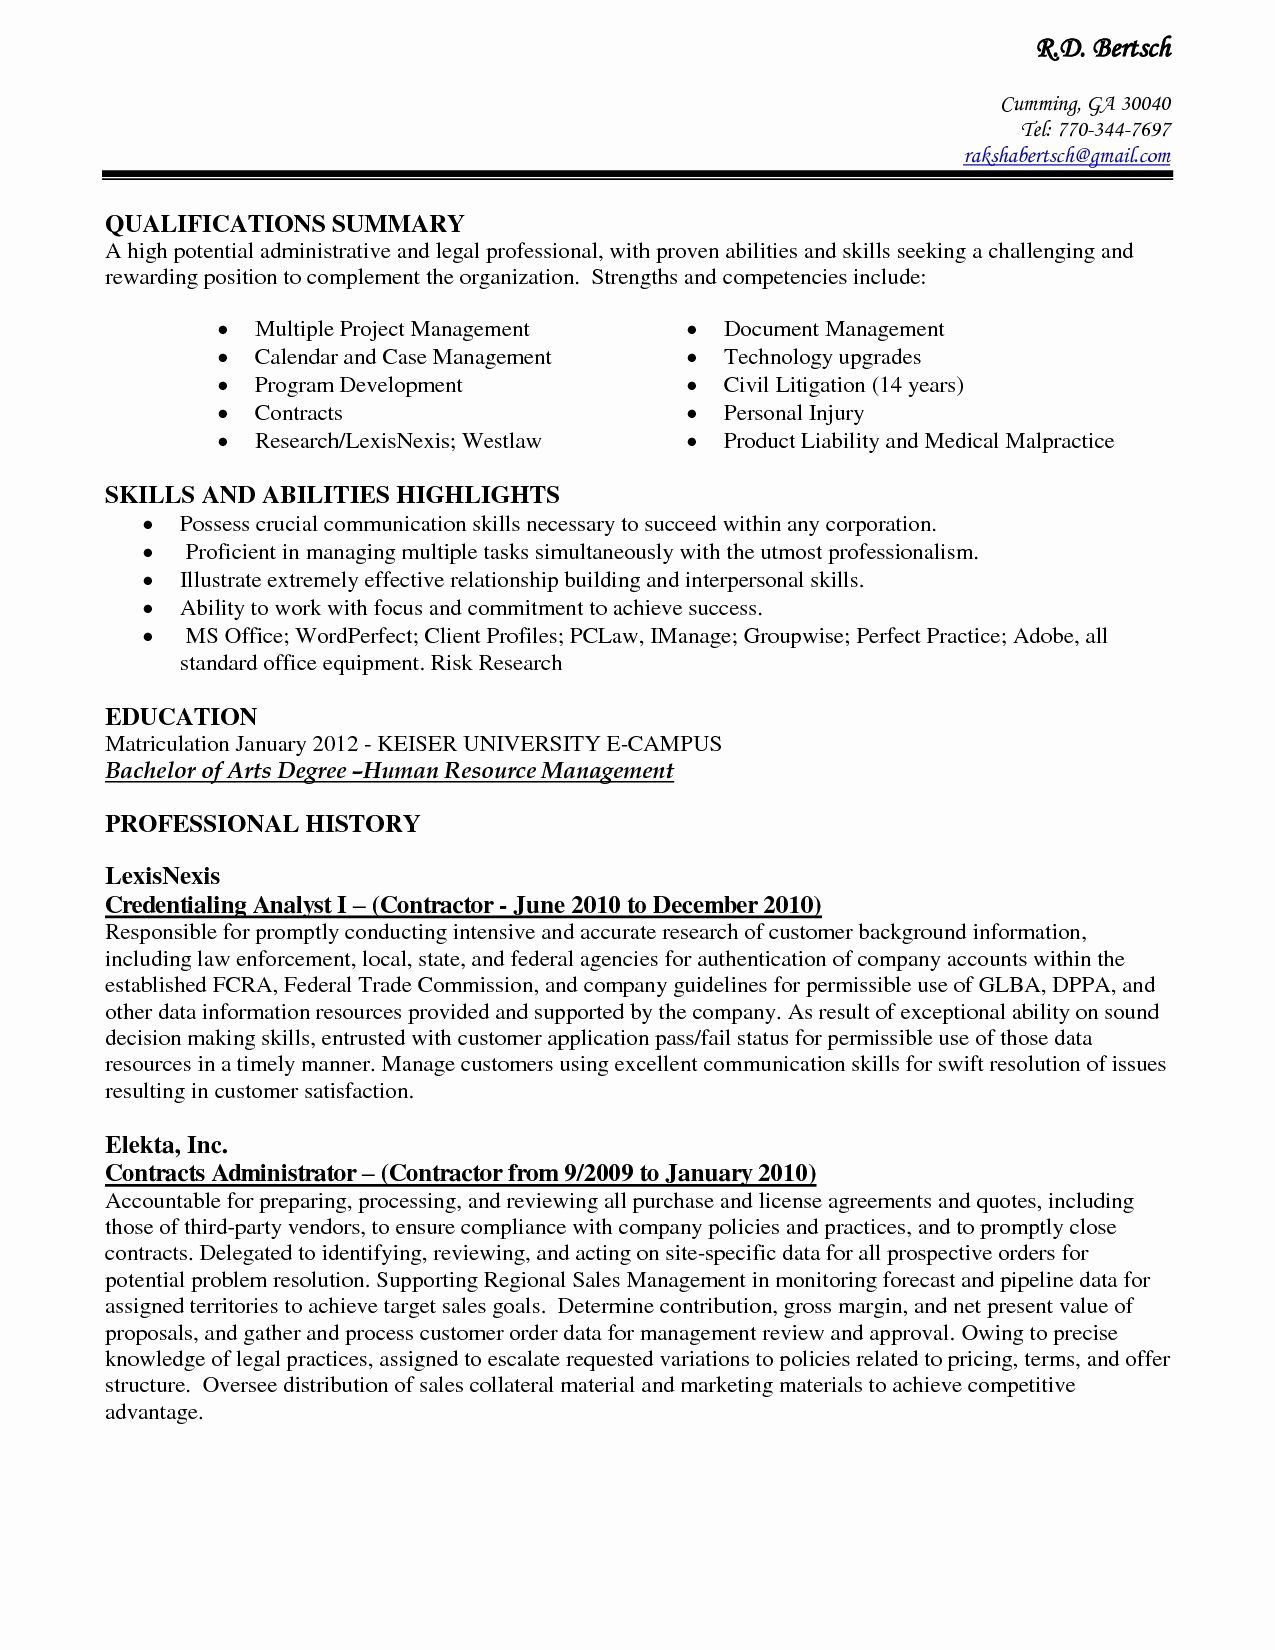 Administrative assistant Resume Summary Unique Resume for